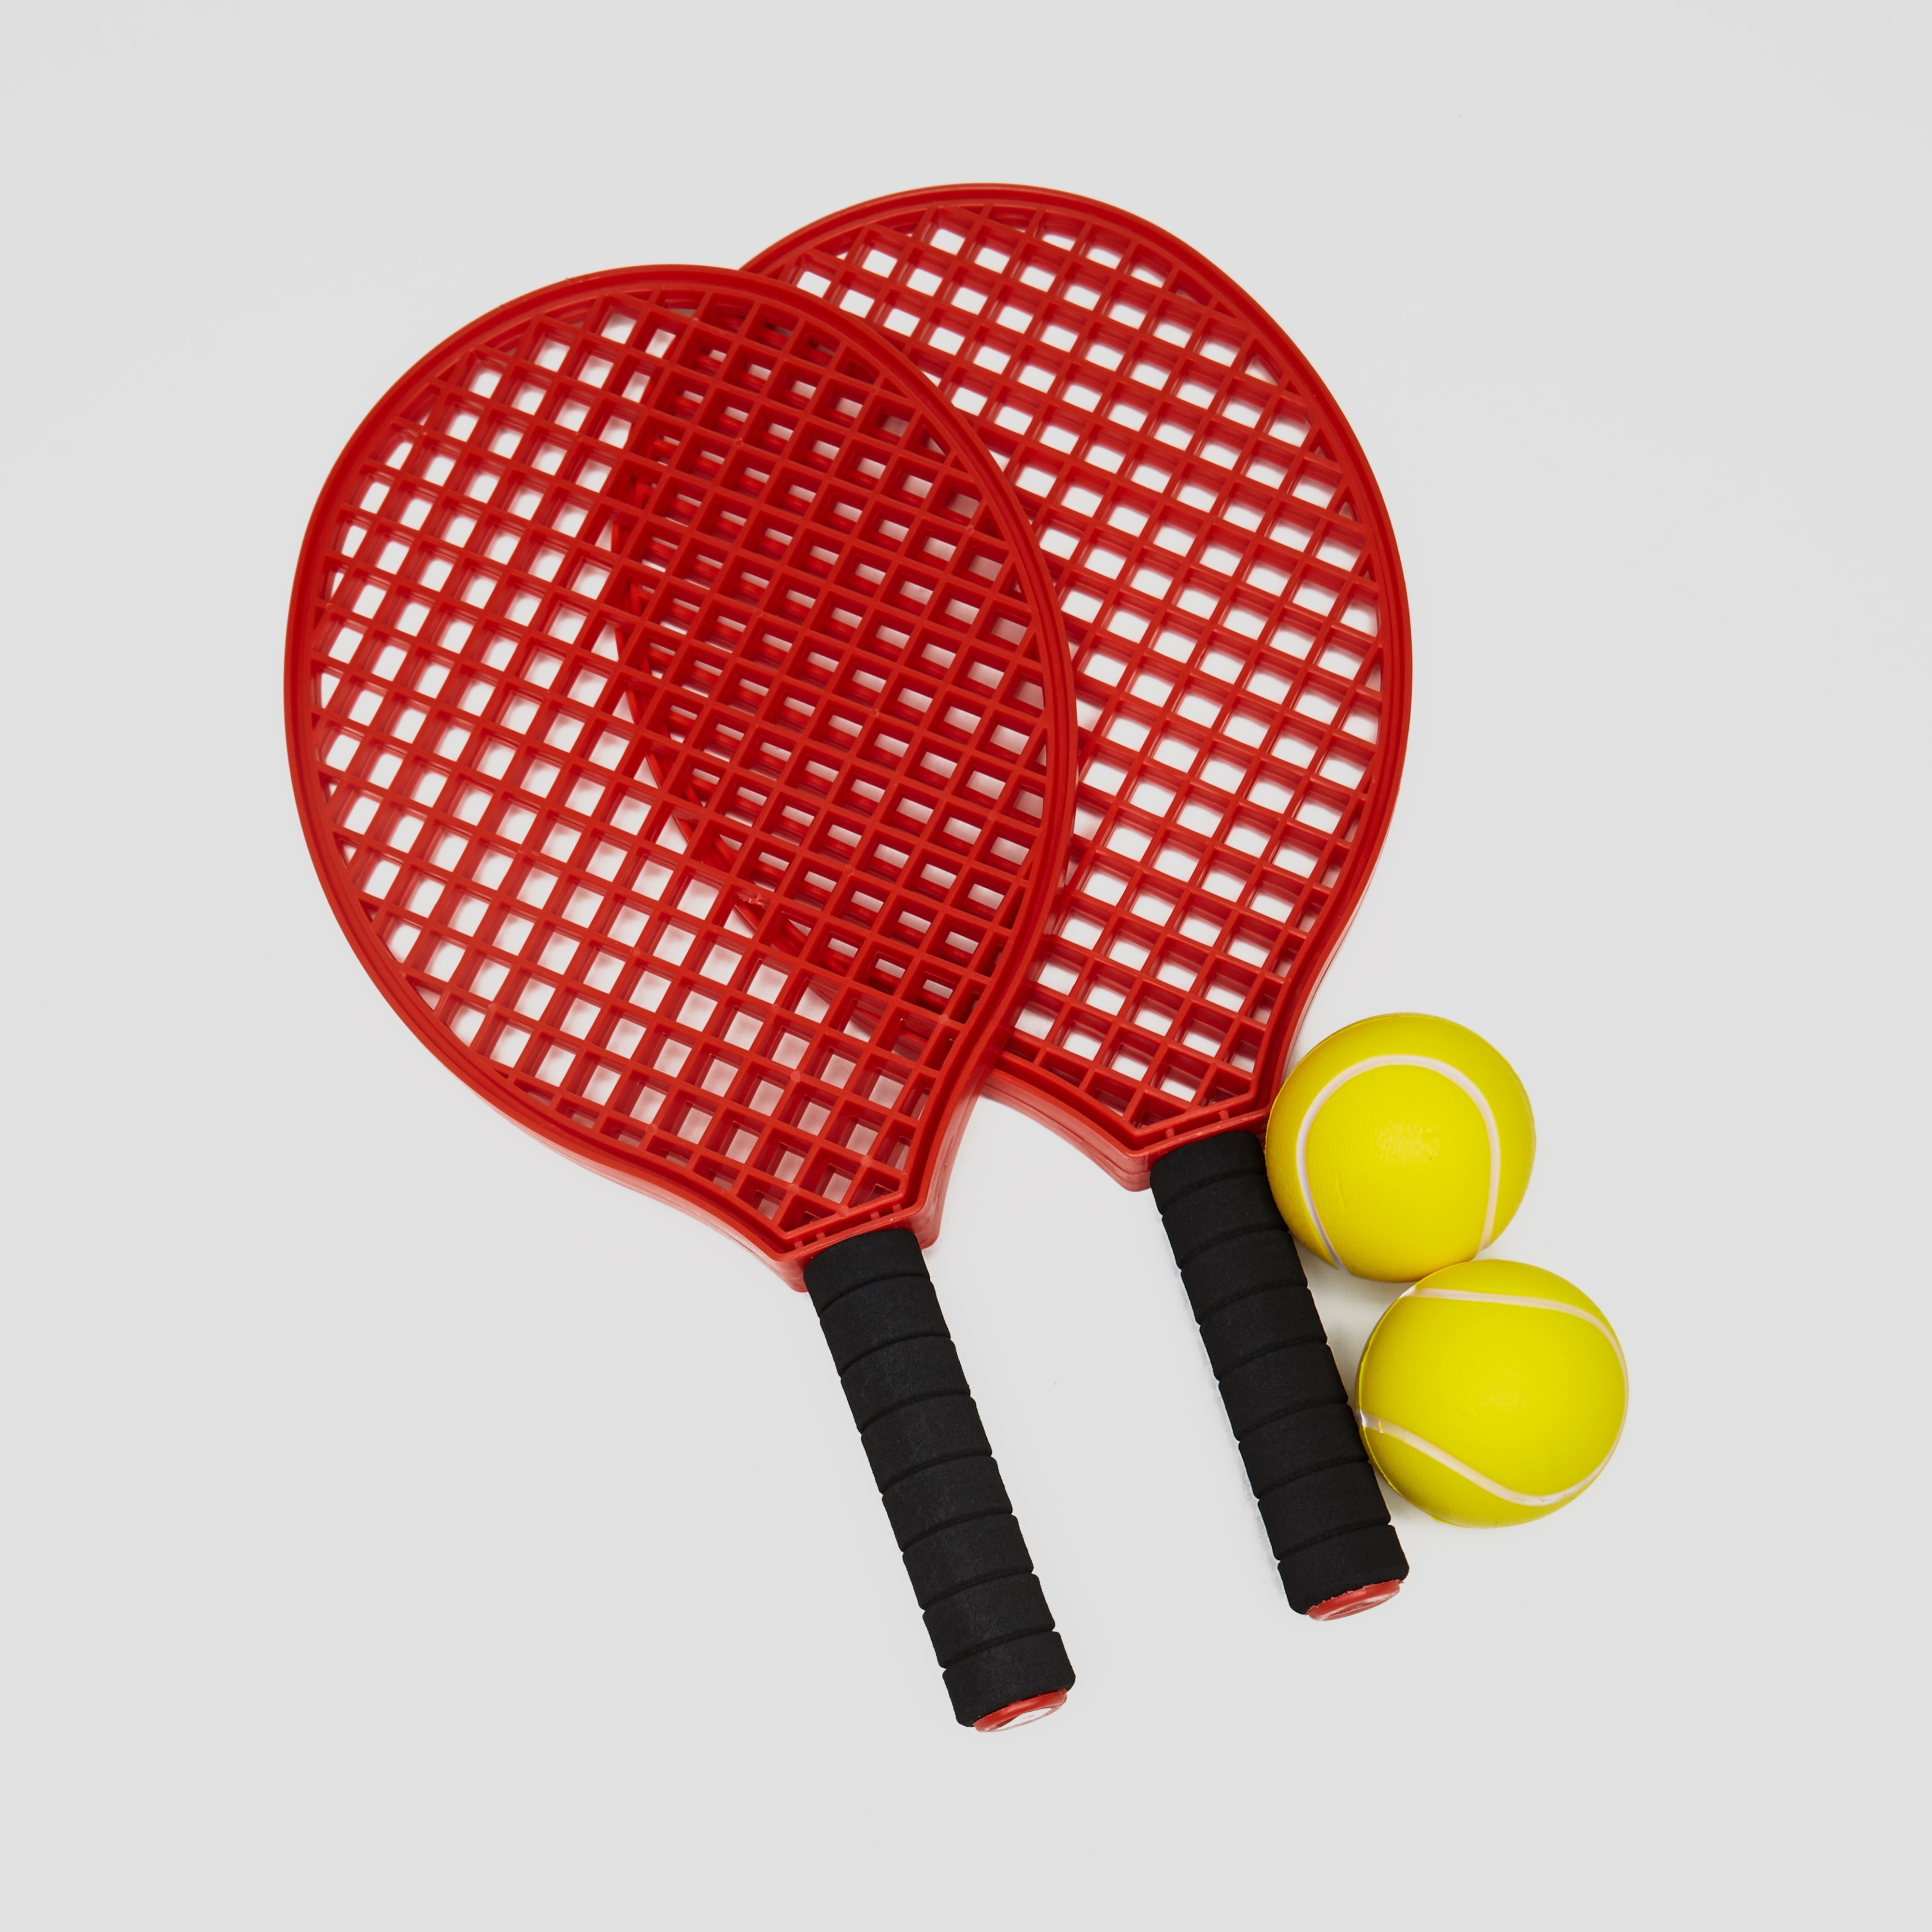 AEROBIE BEACH TENNISSET